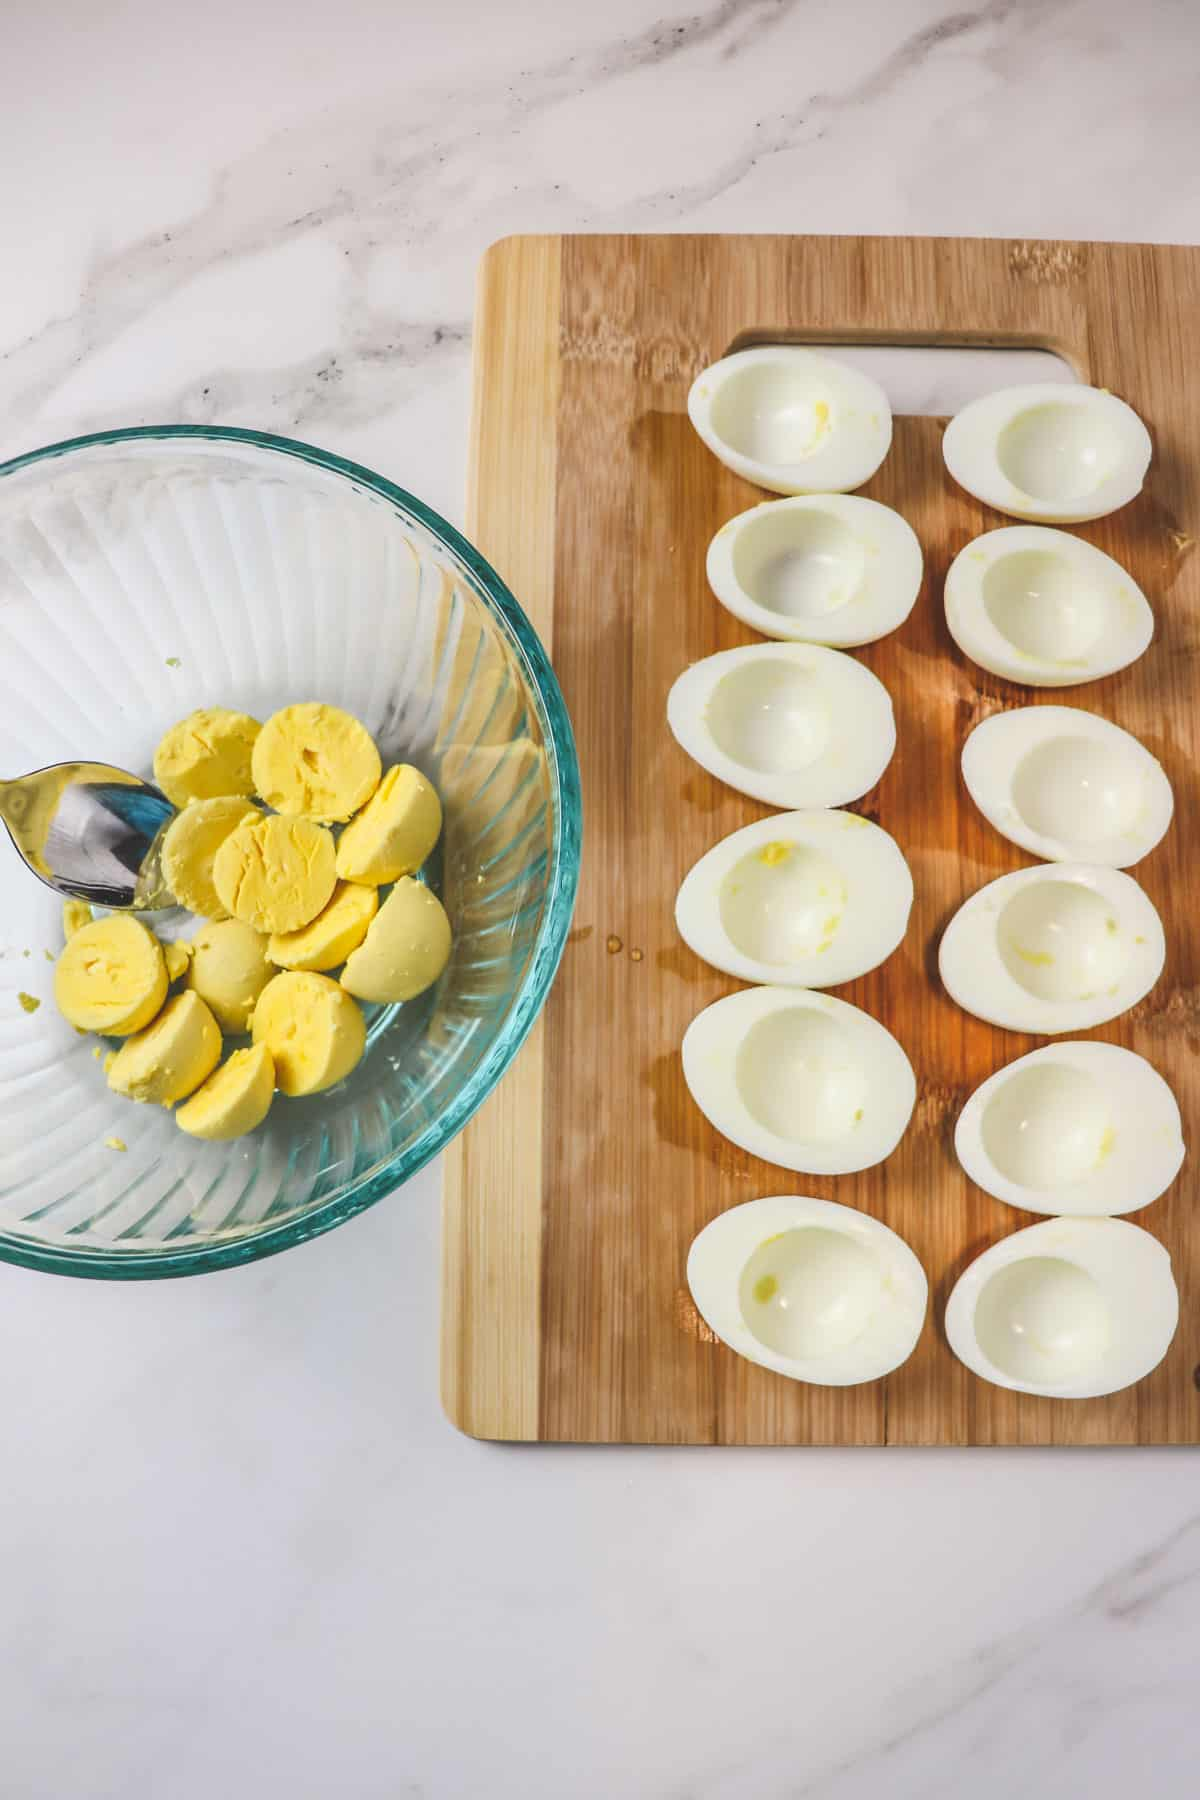 scooping cooked egg yolks out of egg whites